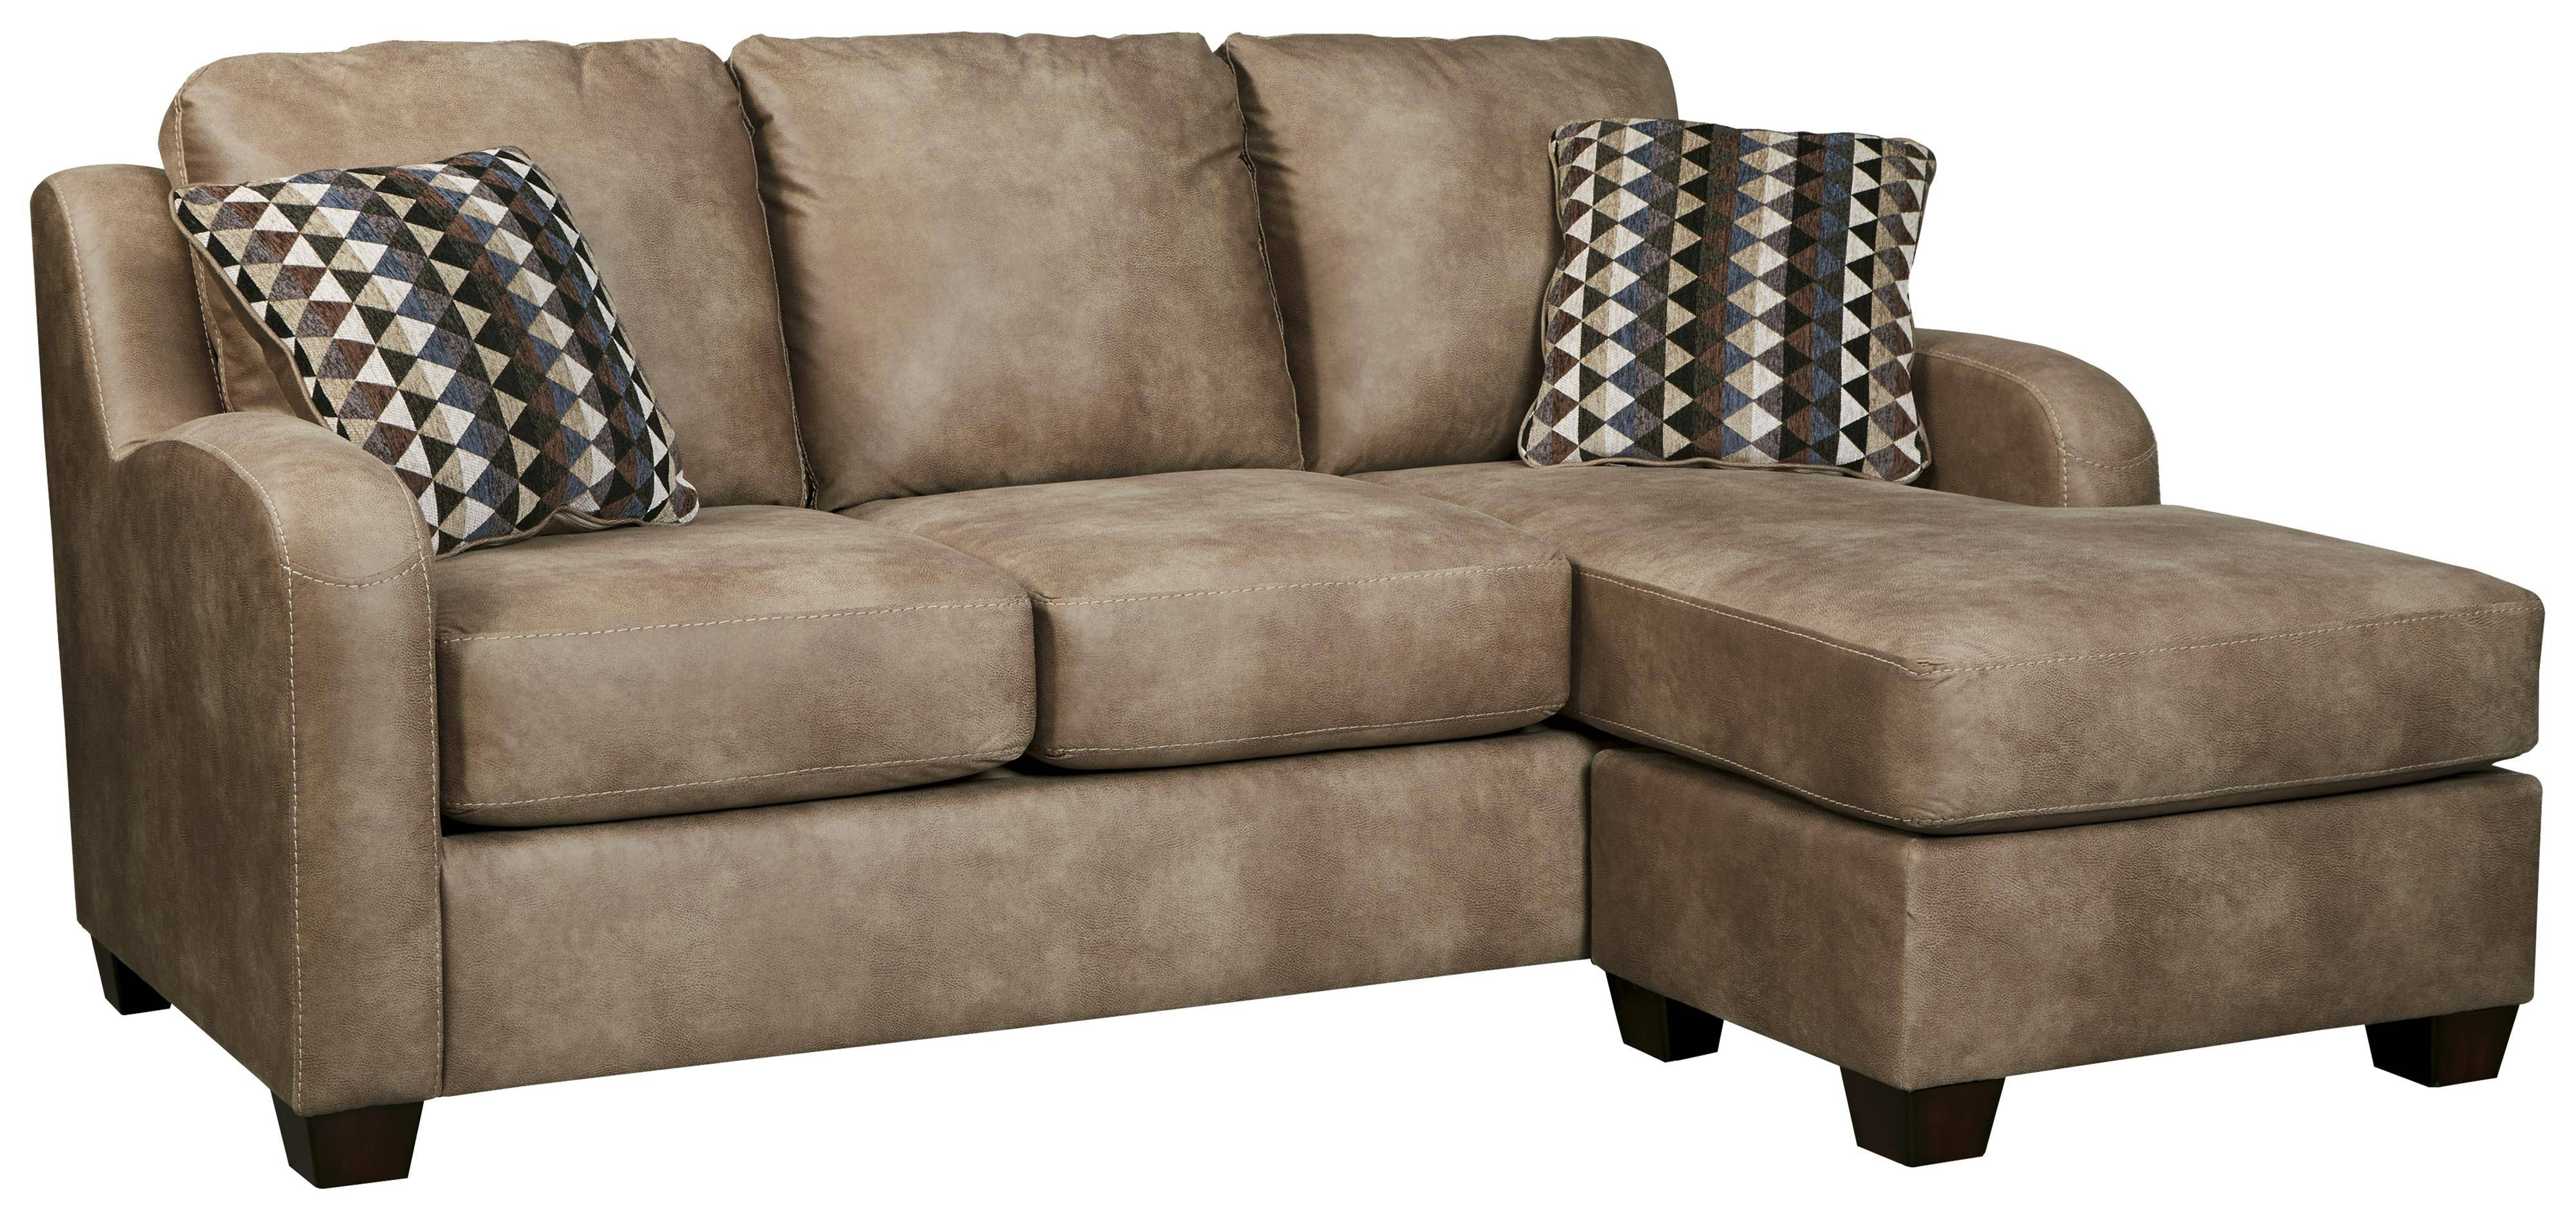 Contemporary Faux Leather Sofa Chaisebenchcraft | Wolf And with regard to Benchcraft Leather Sofas (Image 8 of 15)